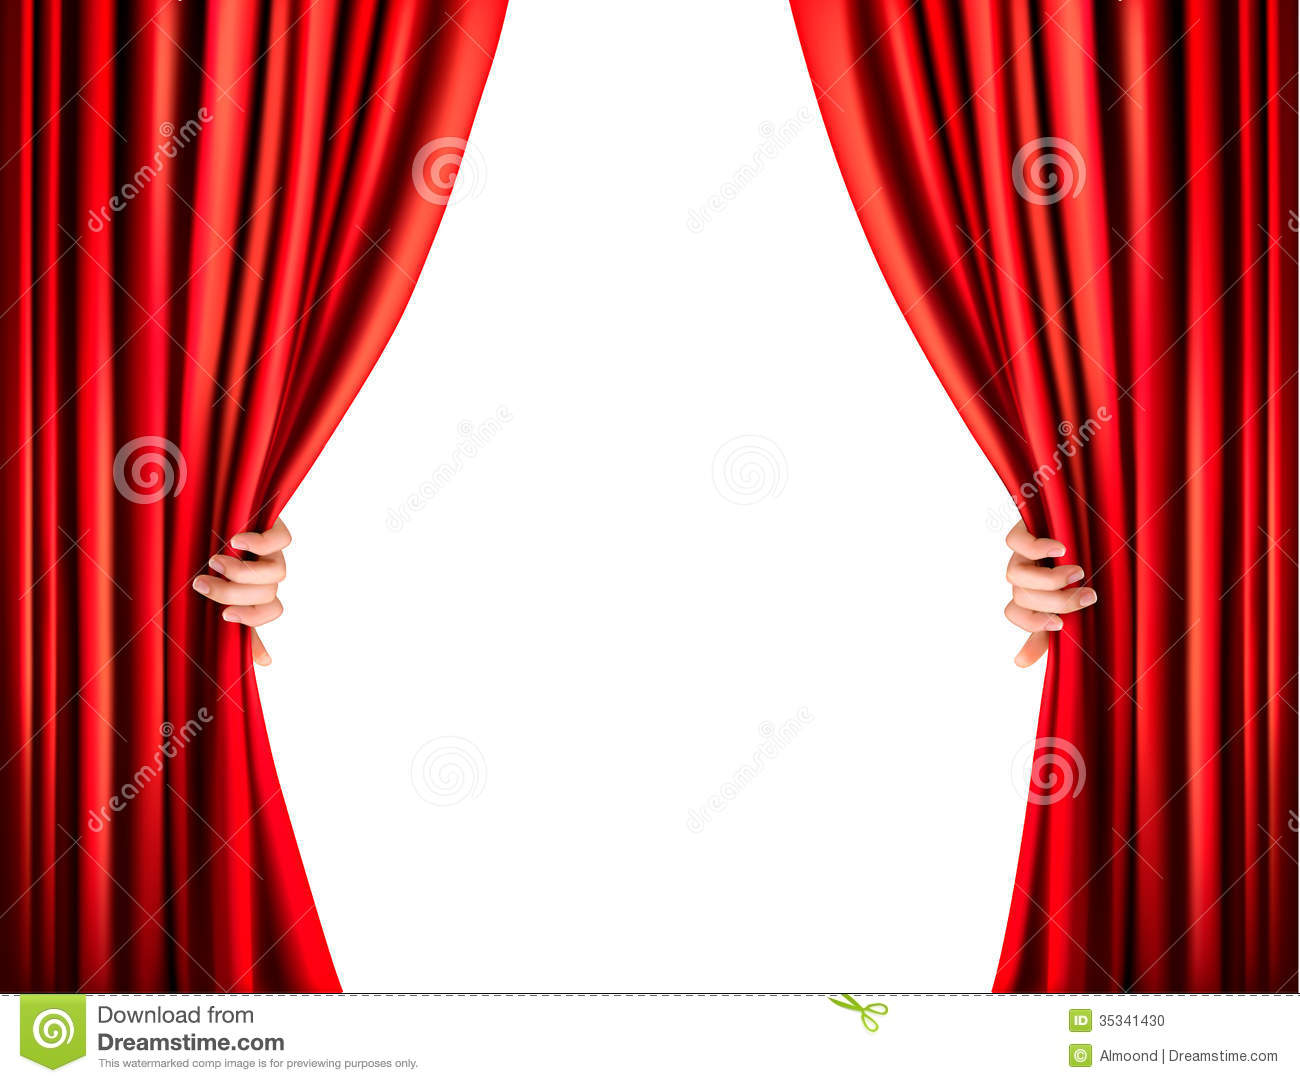 Red curtain design red theater curtains png curtain theater curtains - Background With Red Velvet Curtain Stock Photo Image